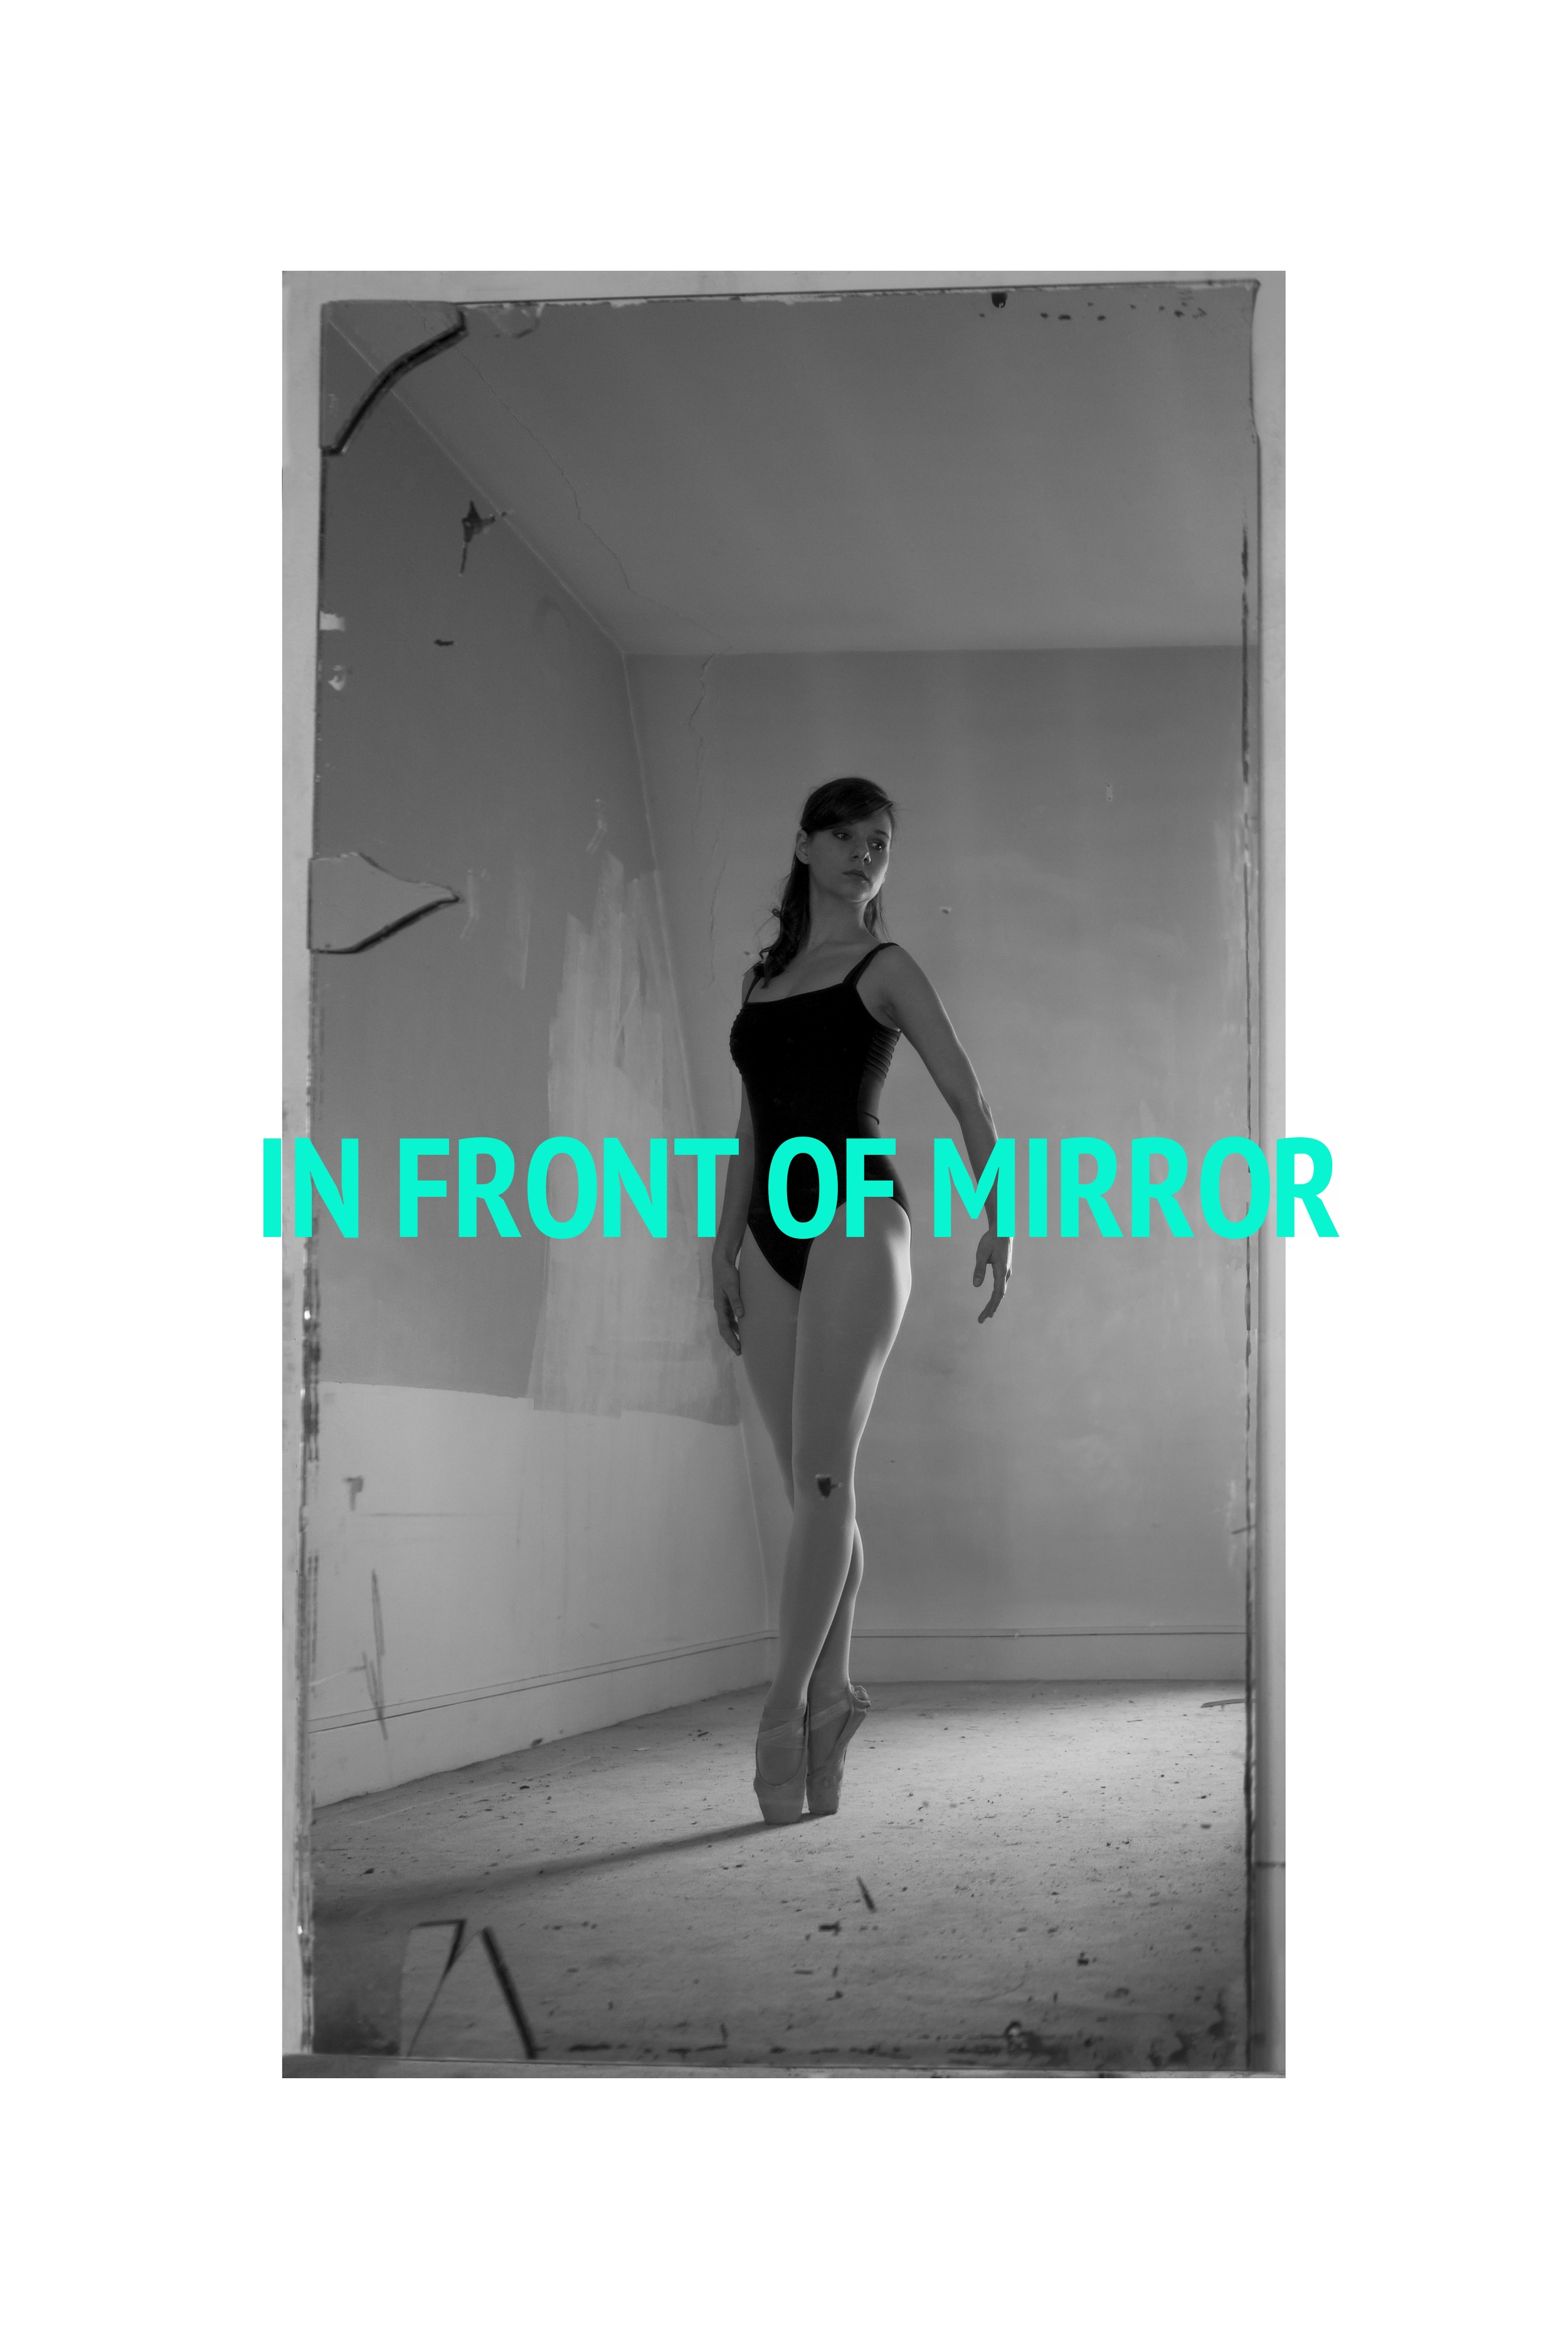 In front of mirror 2015